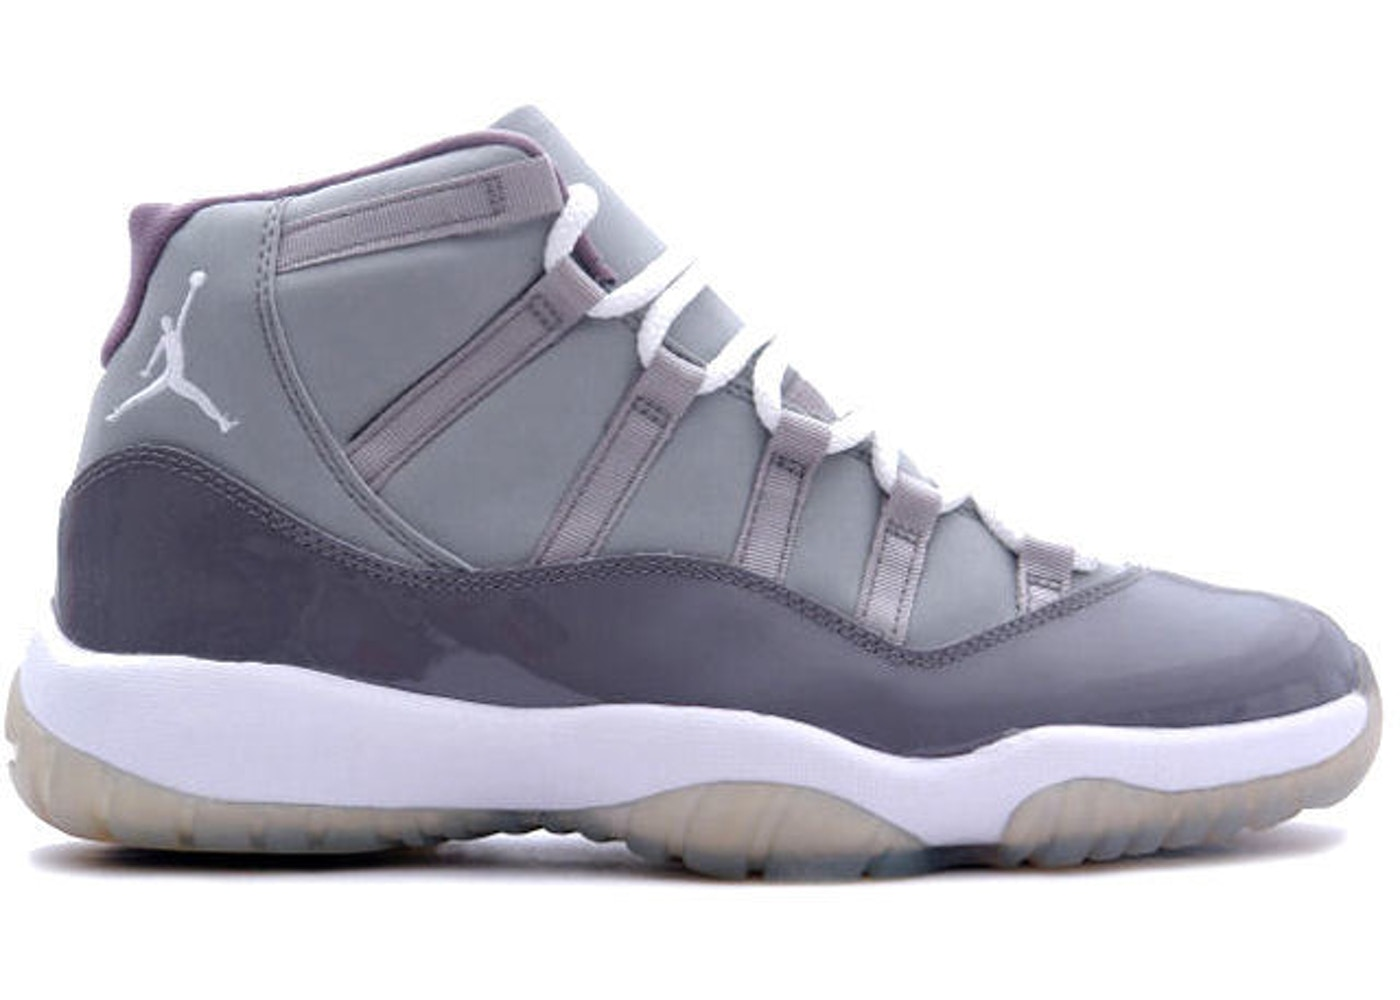 designer fashion a4381 b6d92 Jordan 11 Retro Cool Grey (2001)